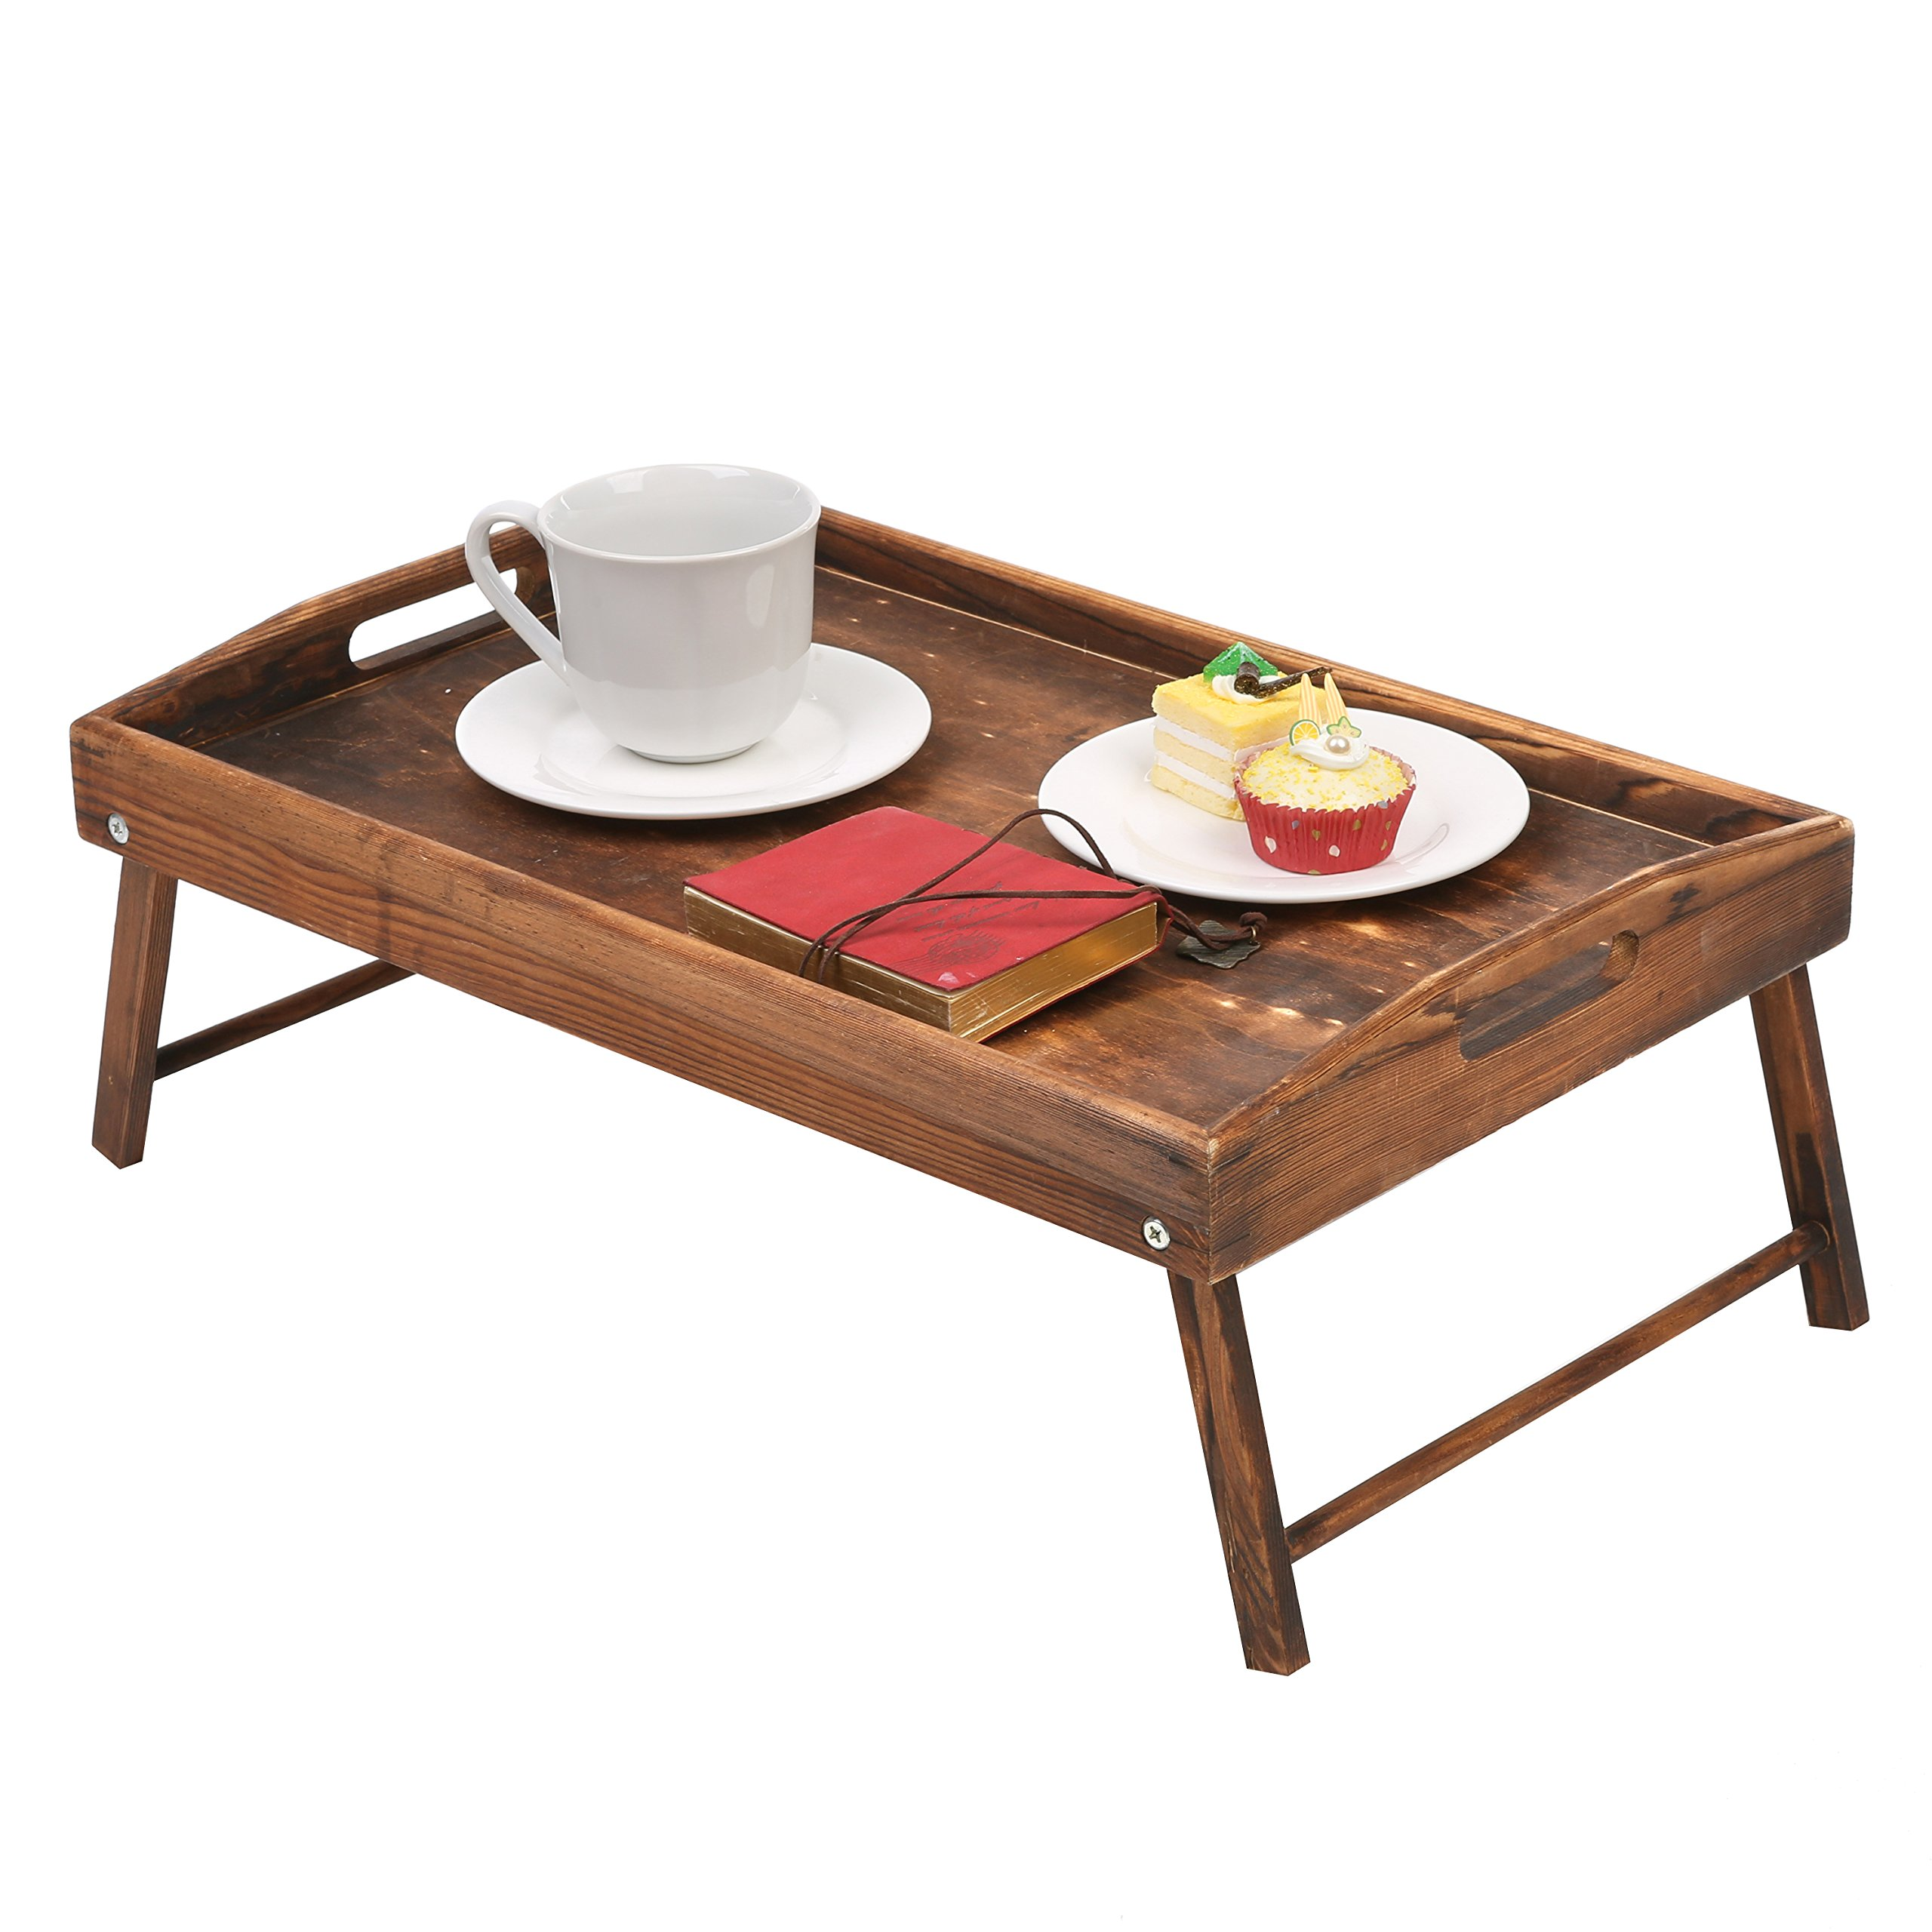 Country Rustic Torched Wood Food Serving Tray, Breakfast in Bed Table with Folding Legs by MyGift (Image #1)